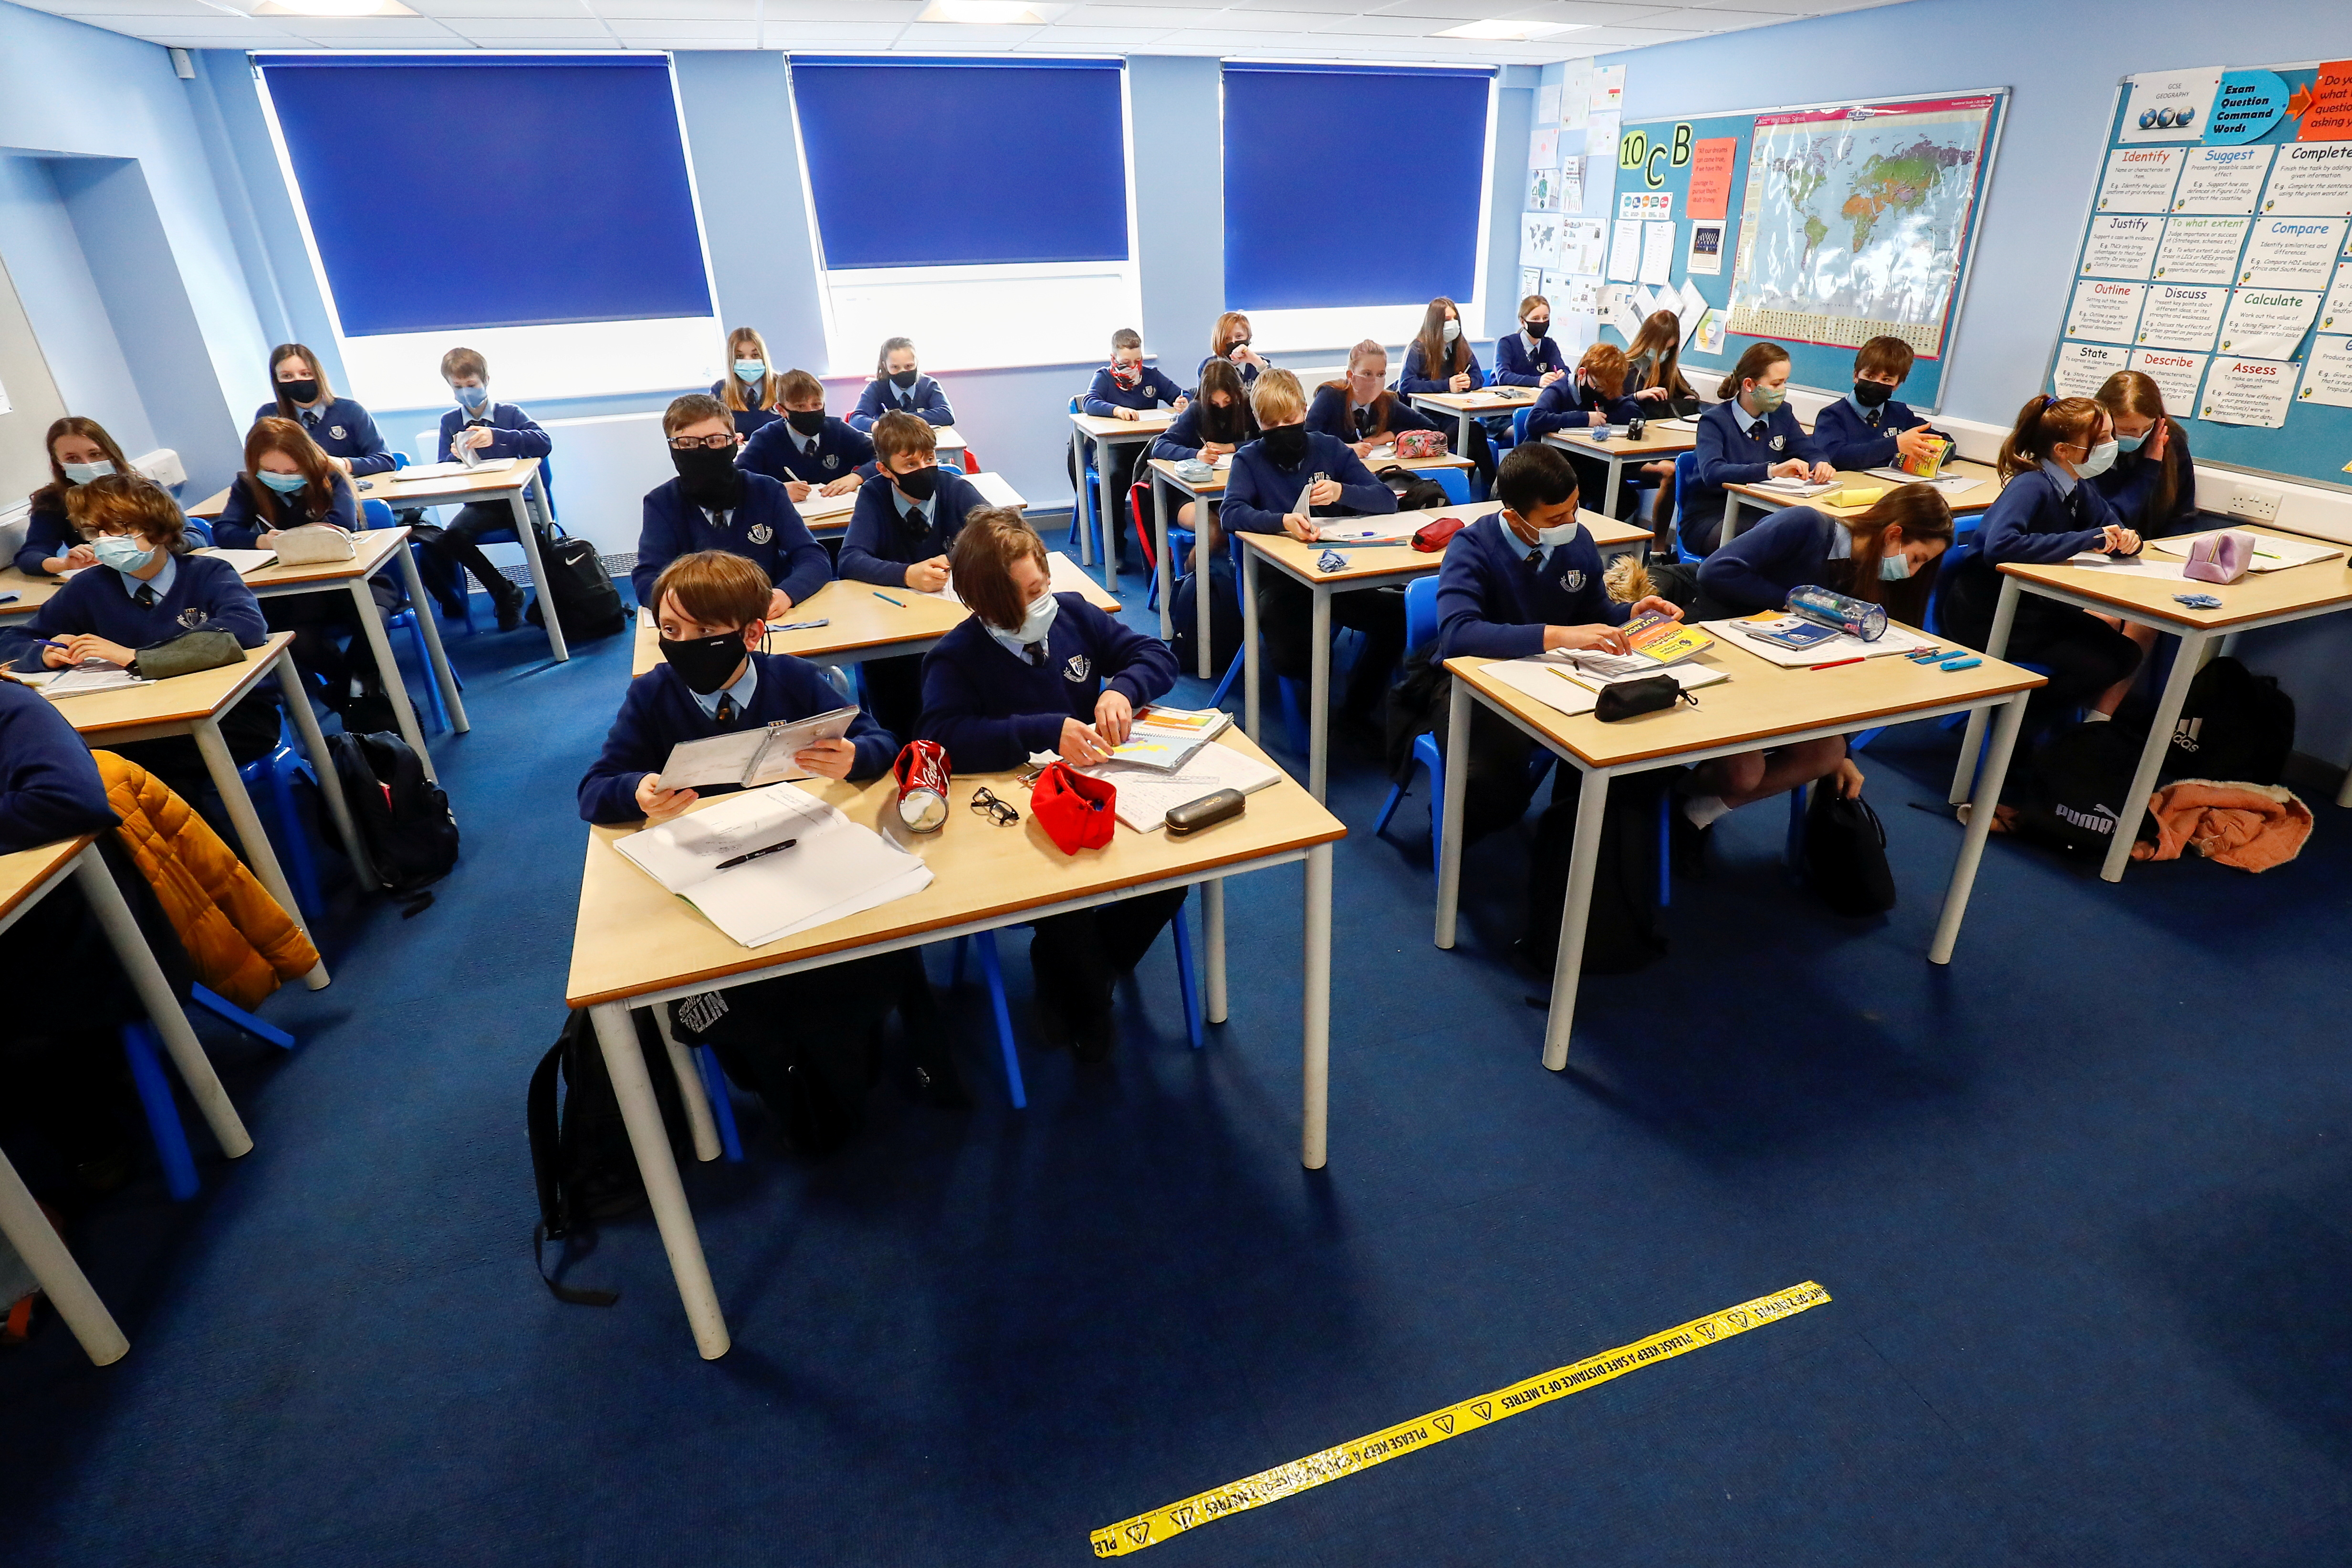 Students attend a lesson at Weaverham High School, as the coronavirus disease (COVID-19) lockdown begins to ease, in Cheshire, Britain, March 9, 2021. REUTERS/Jason Cairnduff